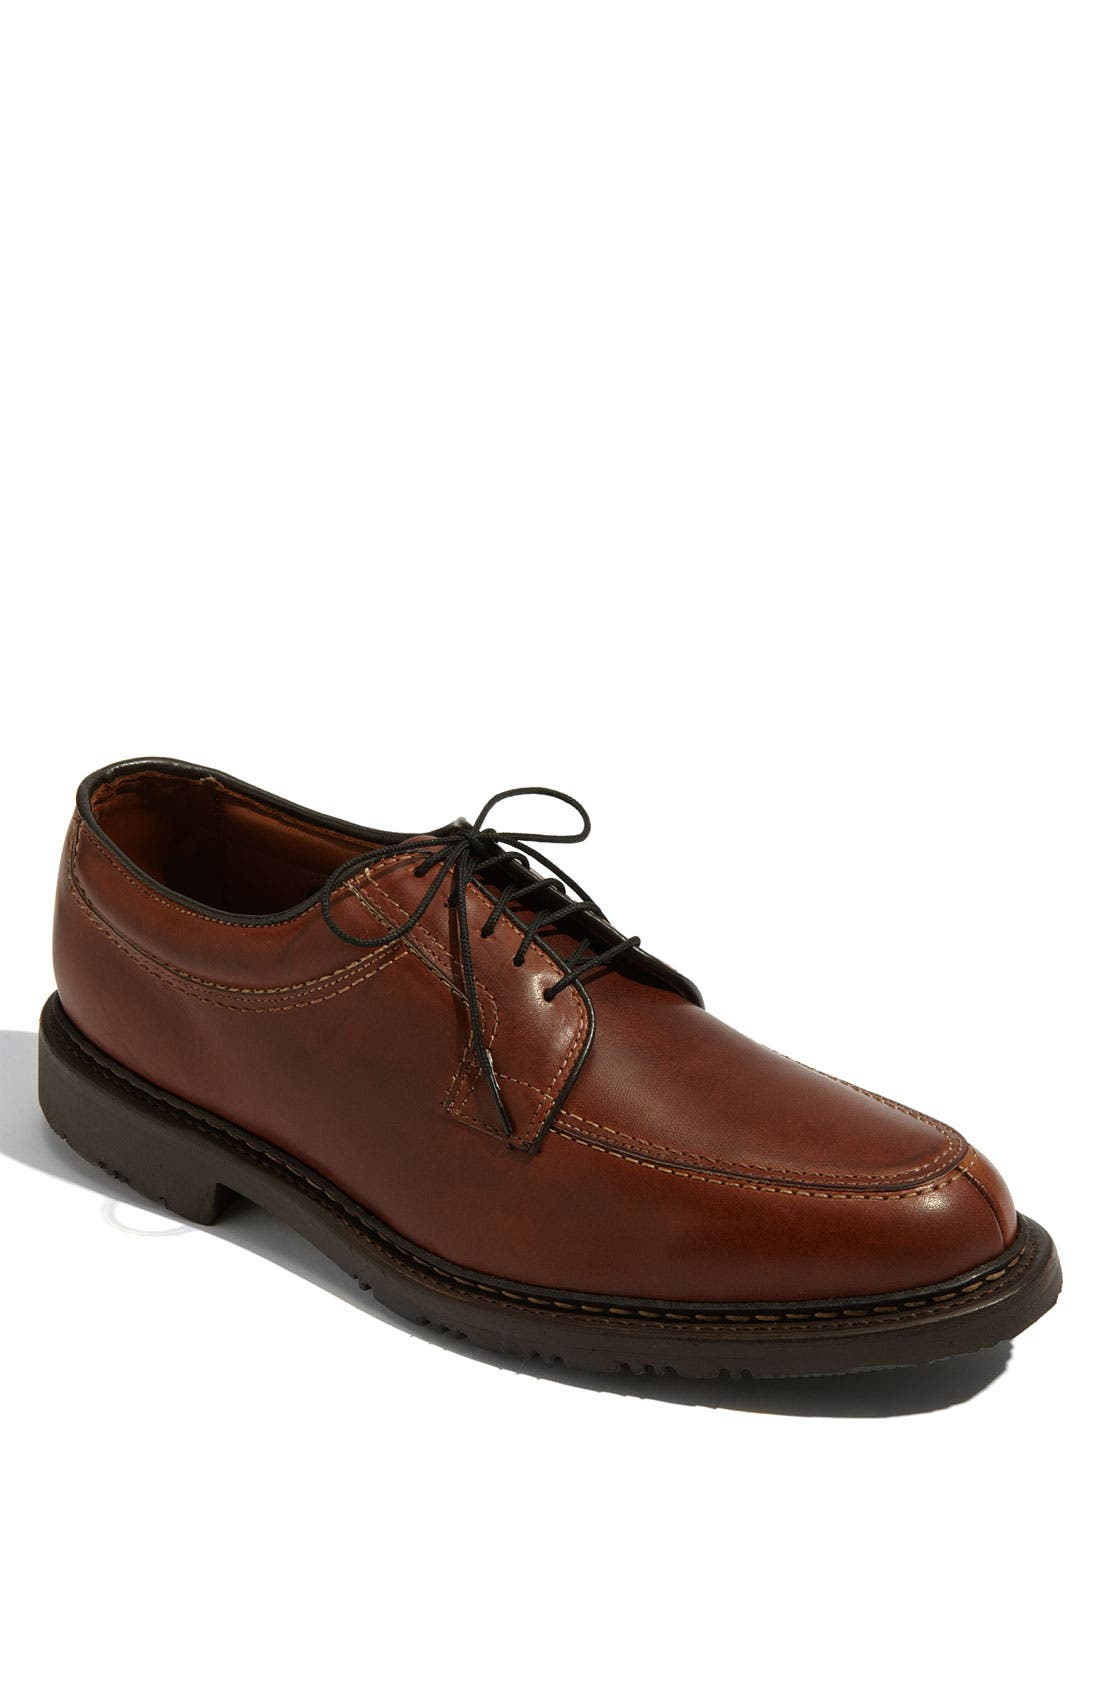 Main Image - Allen Edmonds 'Wilbert' Split Toe Derby (Men)